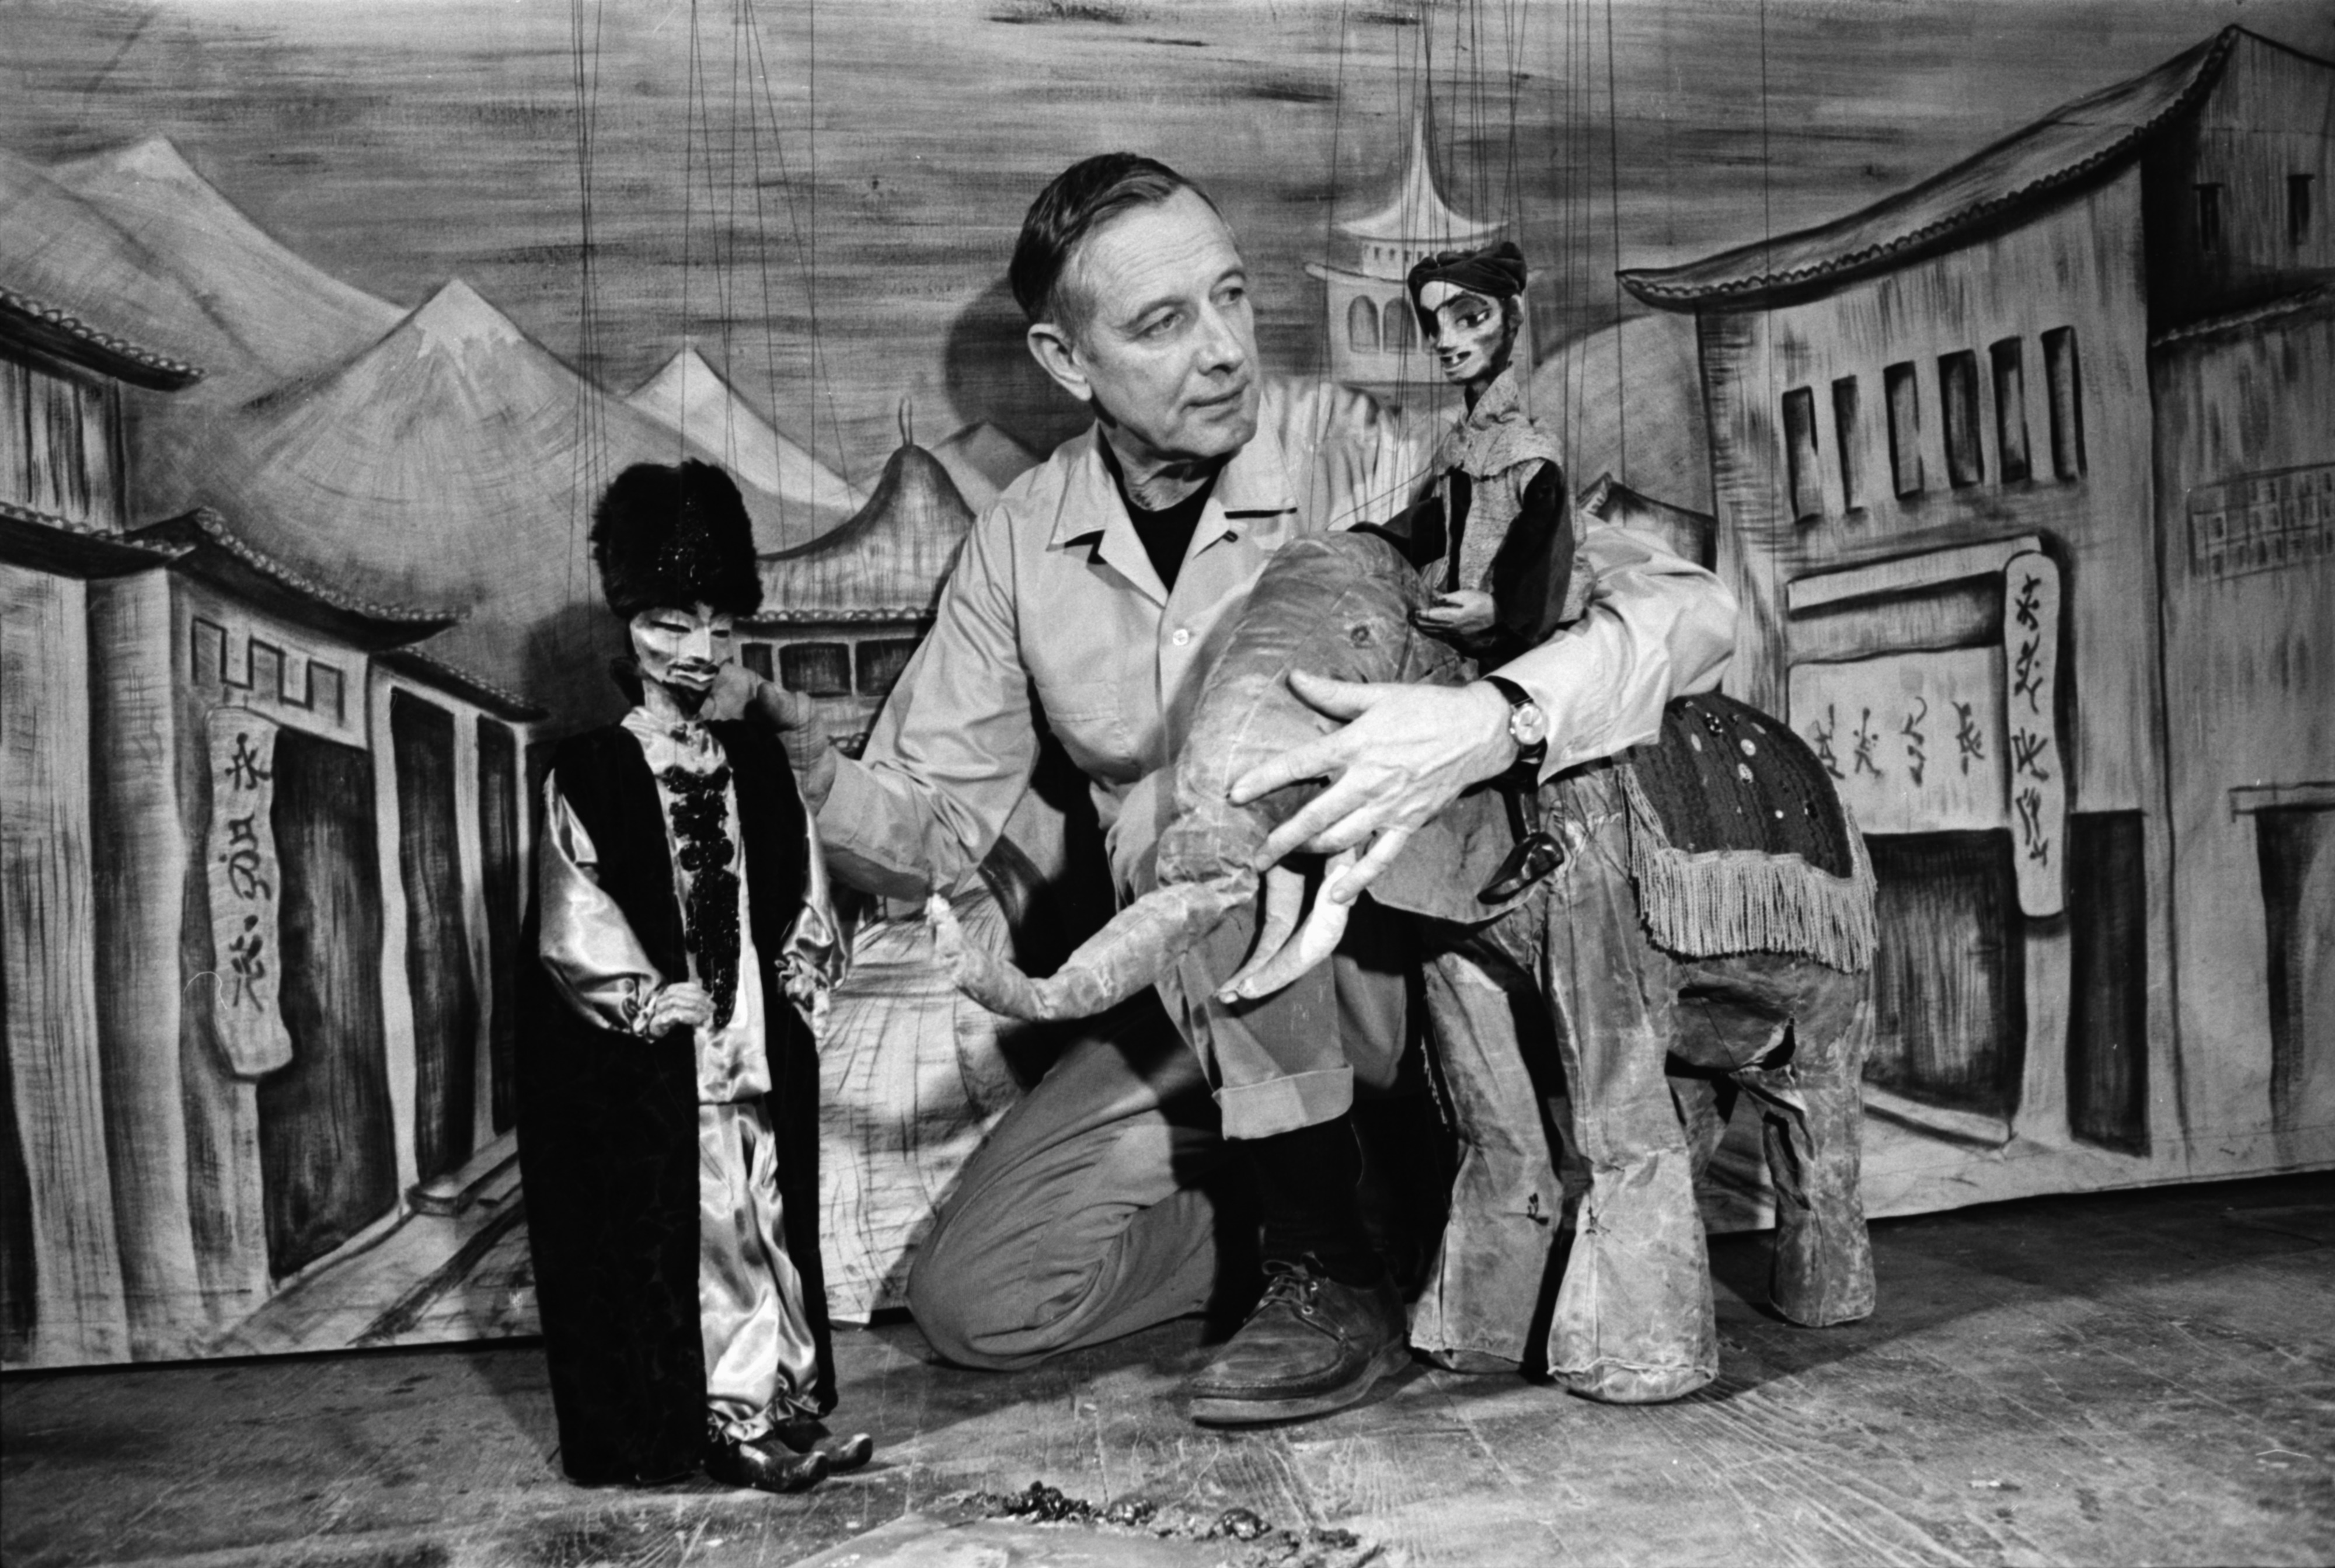 Meredith Bixby with his puppets, February 1969 image